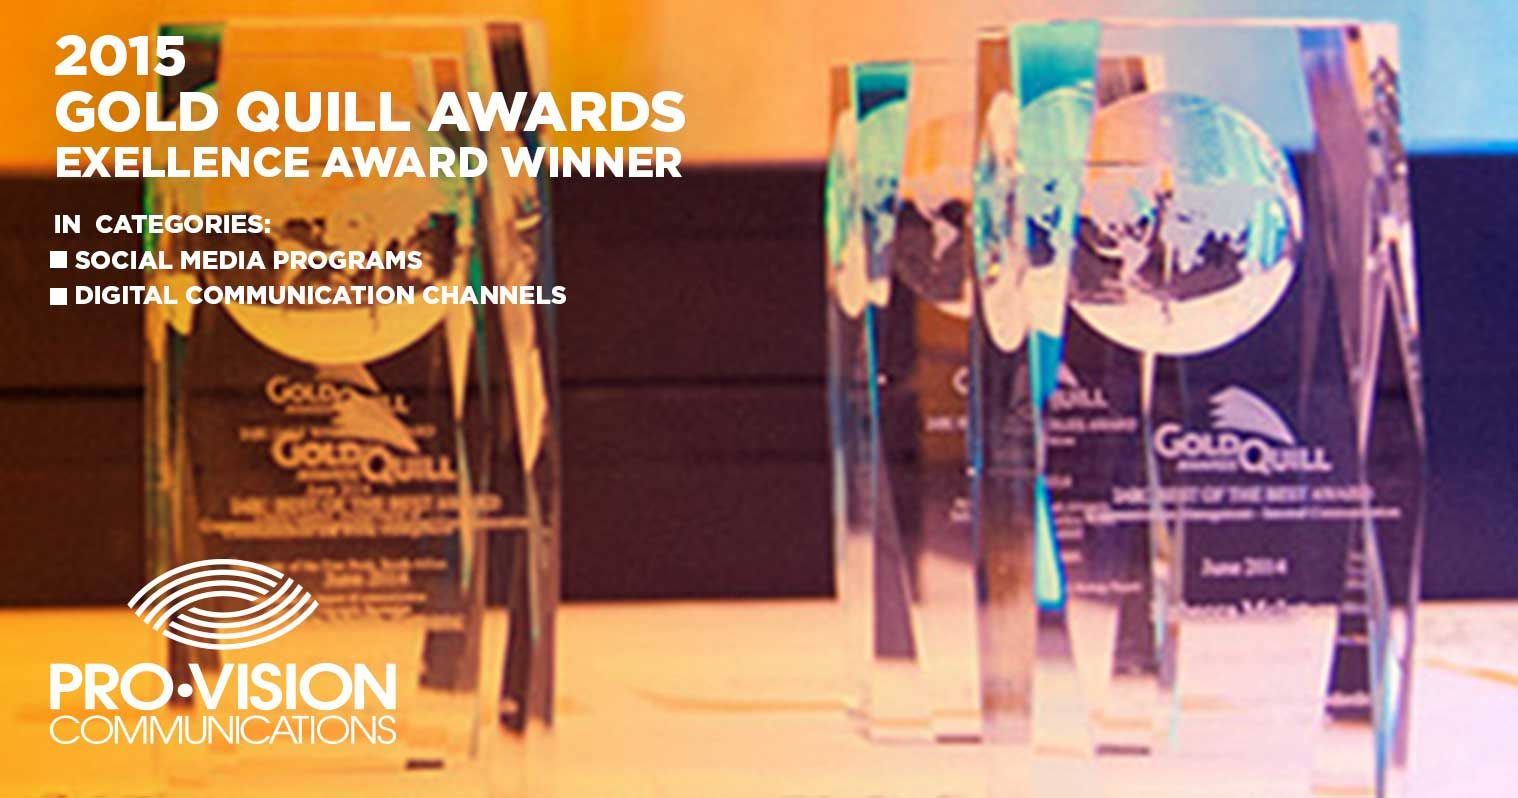 Pro-Vision Communications - победитель IABC 2015 Gold Quill Awards